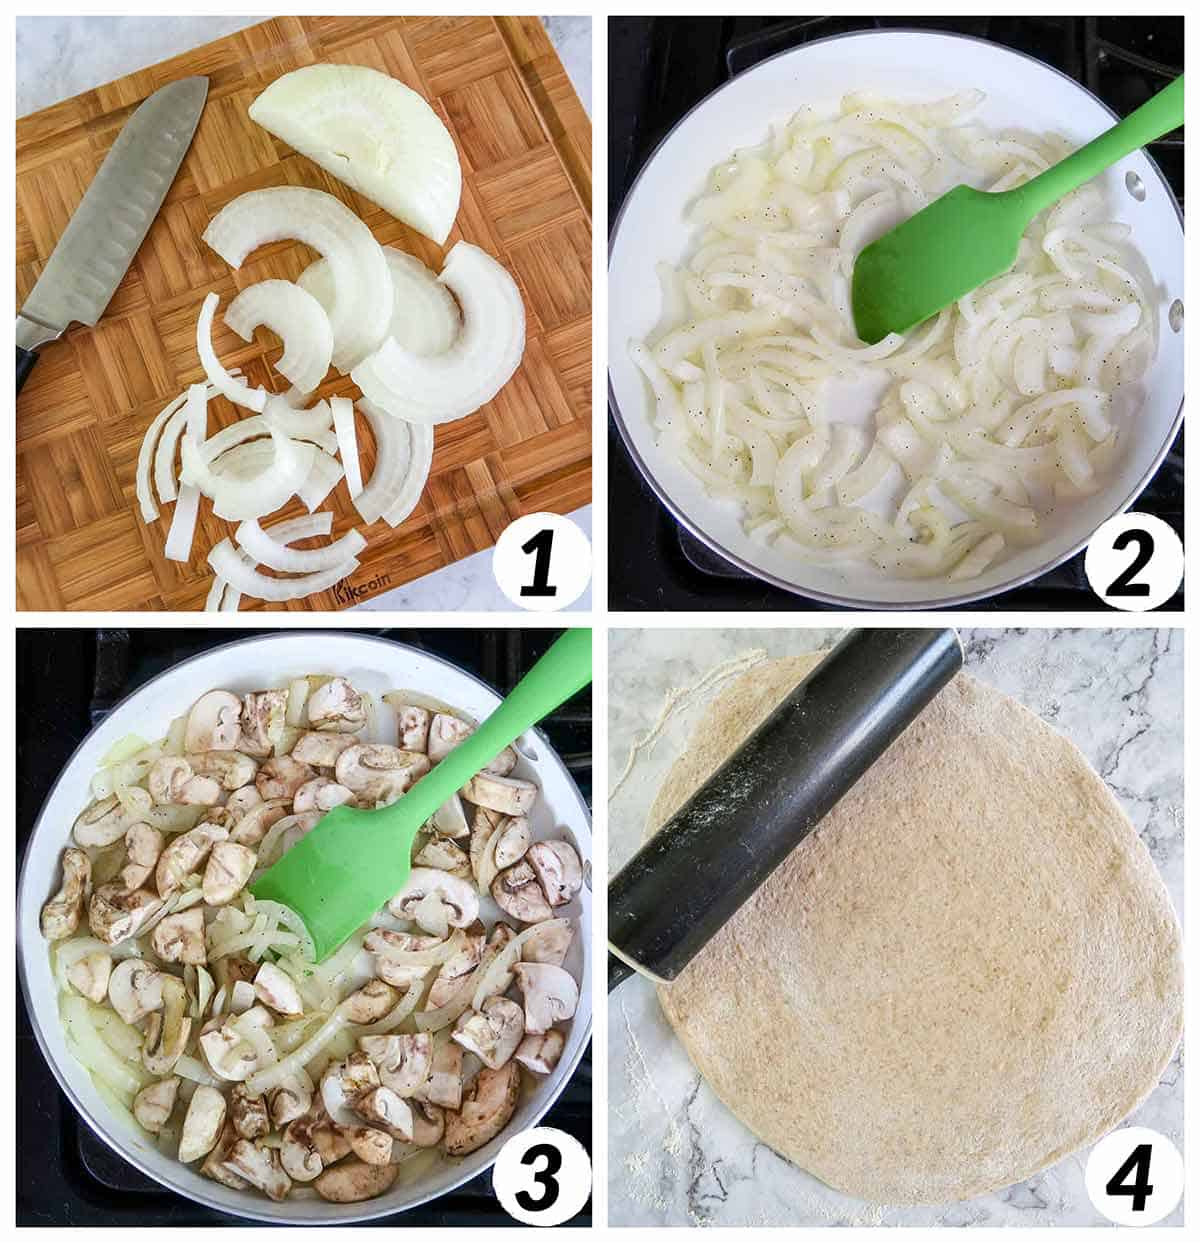 Four panel collage of process steps 1-4. Chopping and cooking onion, mixing in mushrooms, and rolling out pizza dough.